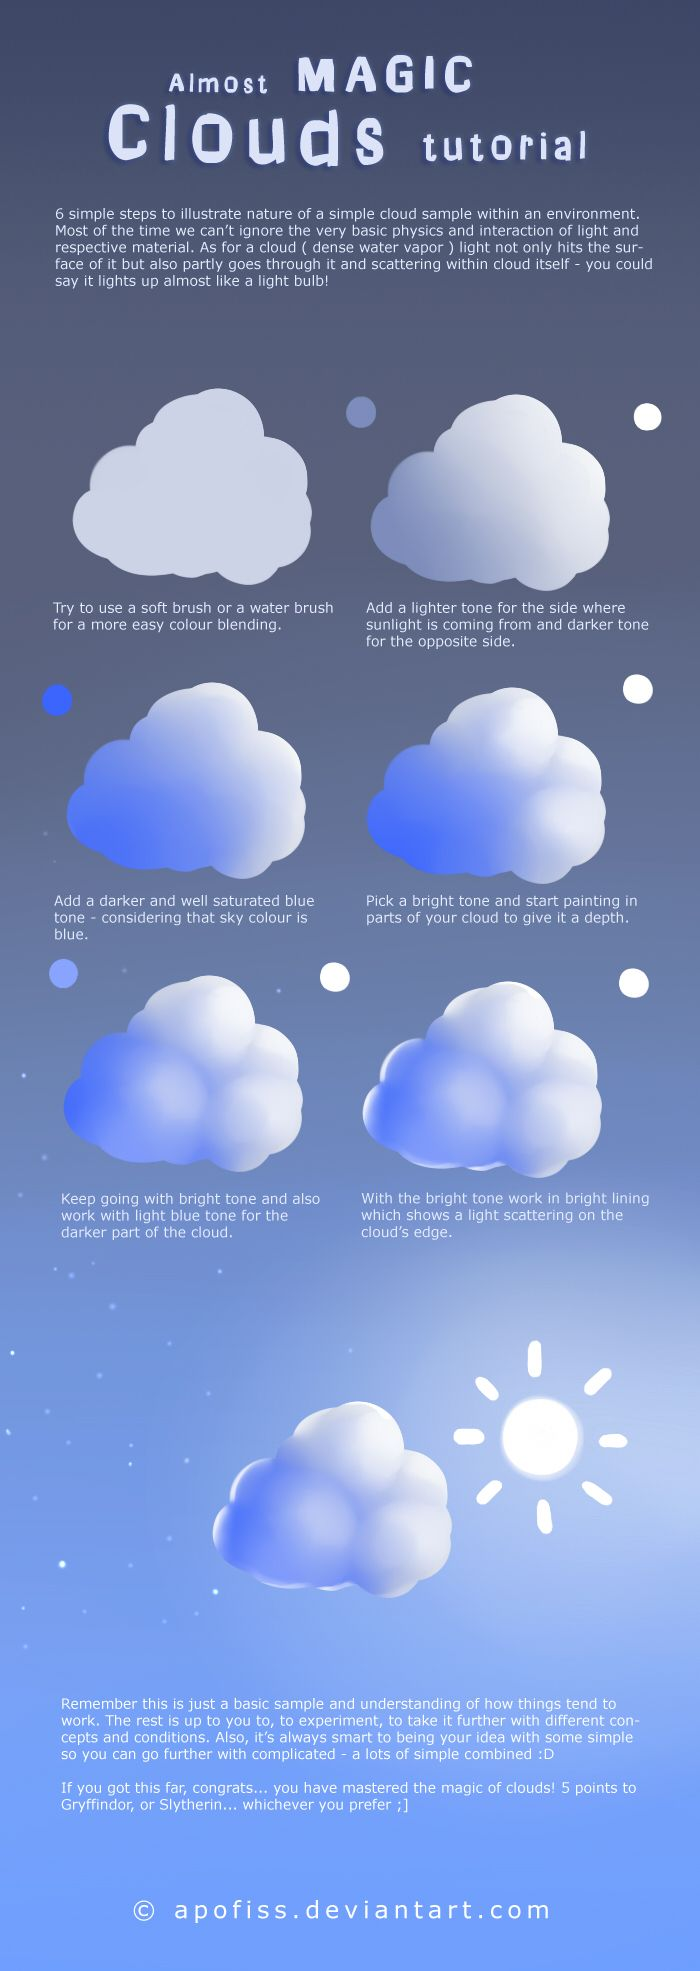 Drawn clouds illustrated And on CLOUDS images draw